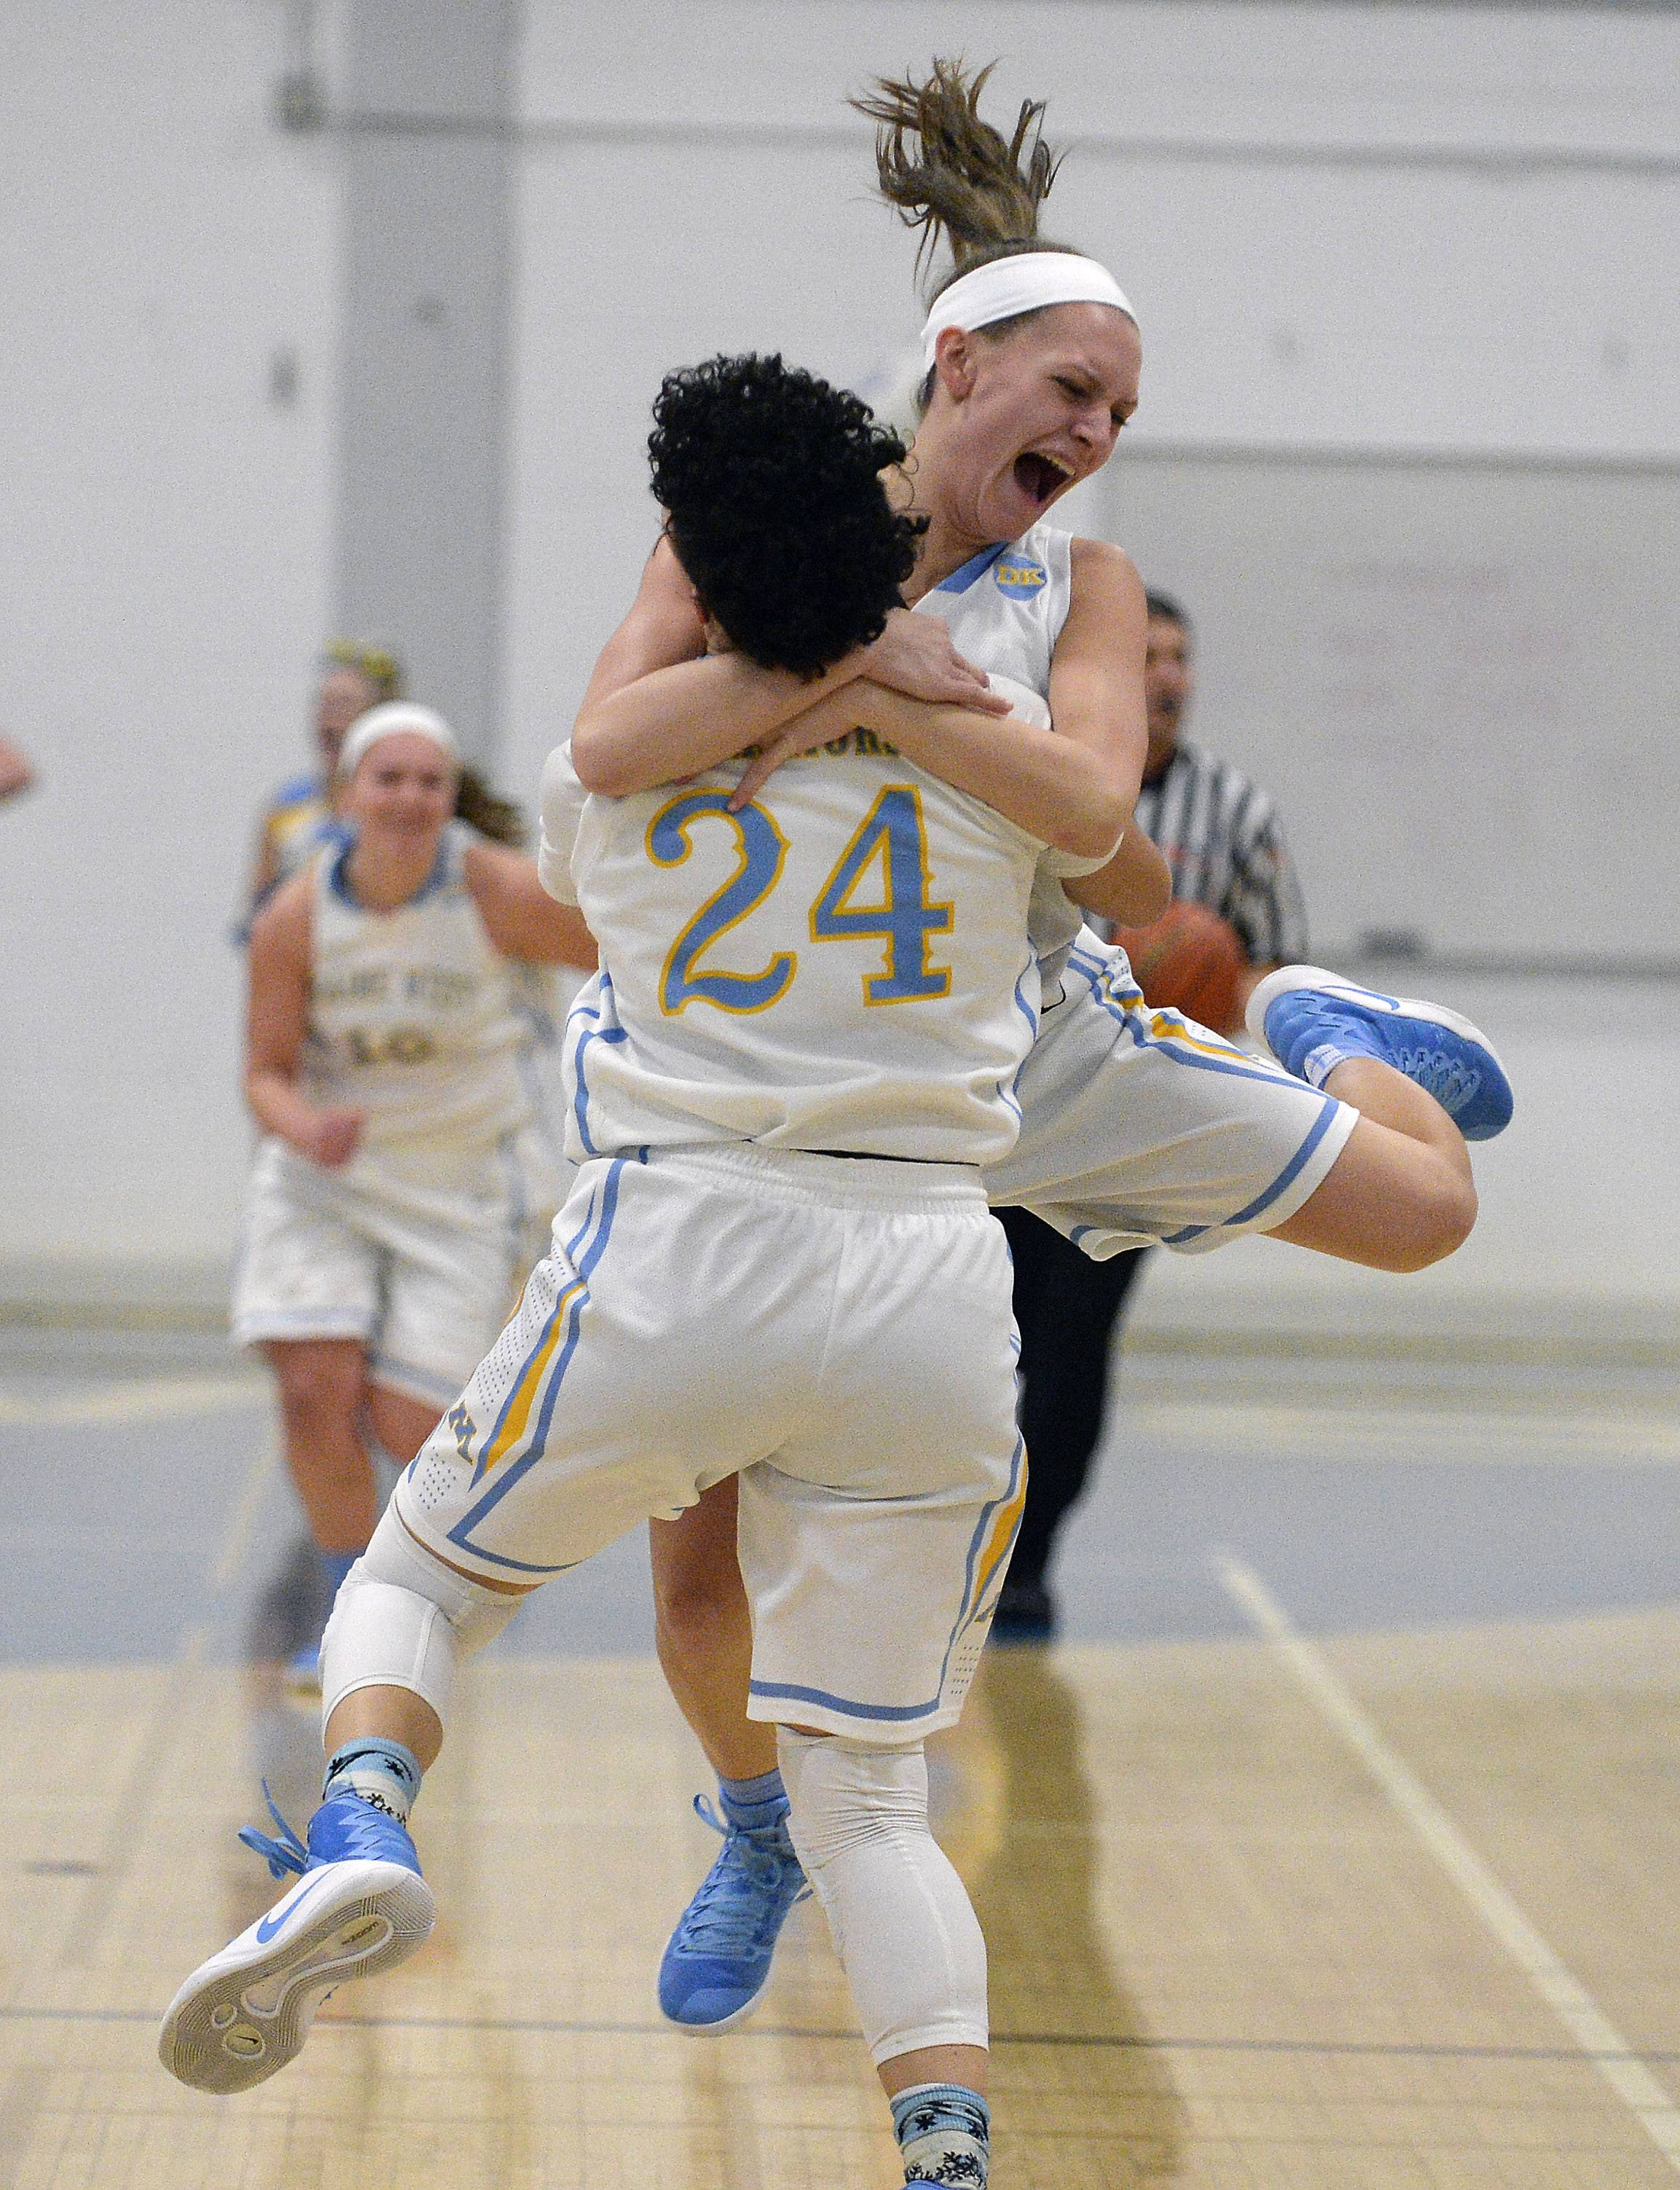 Maine West's Alisa Fallon and Catherine Johnson celebrate their Class 4A regional final win over New Trier at Maine West on Thursday.